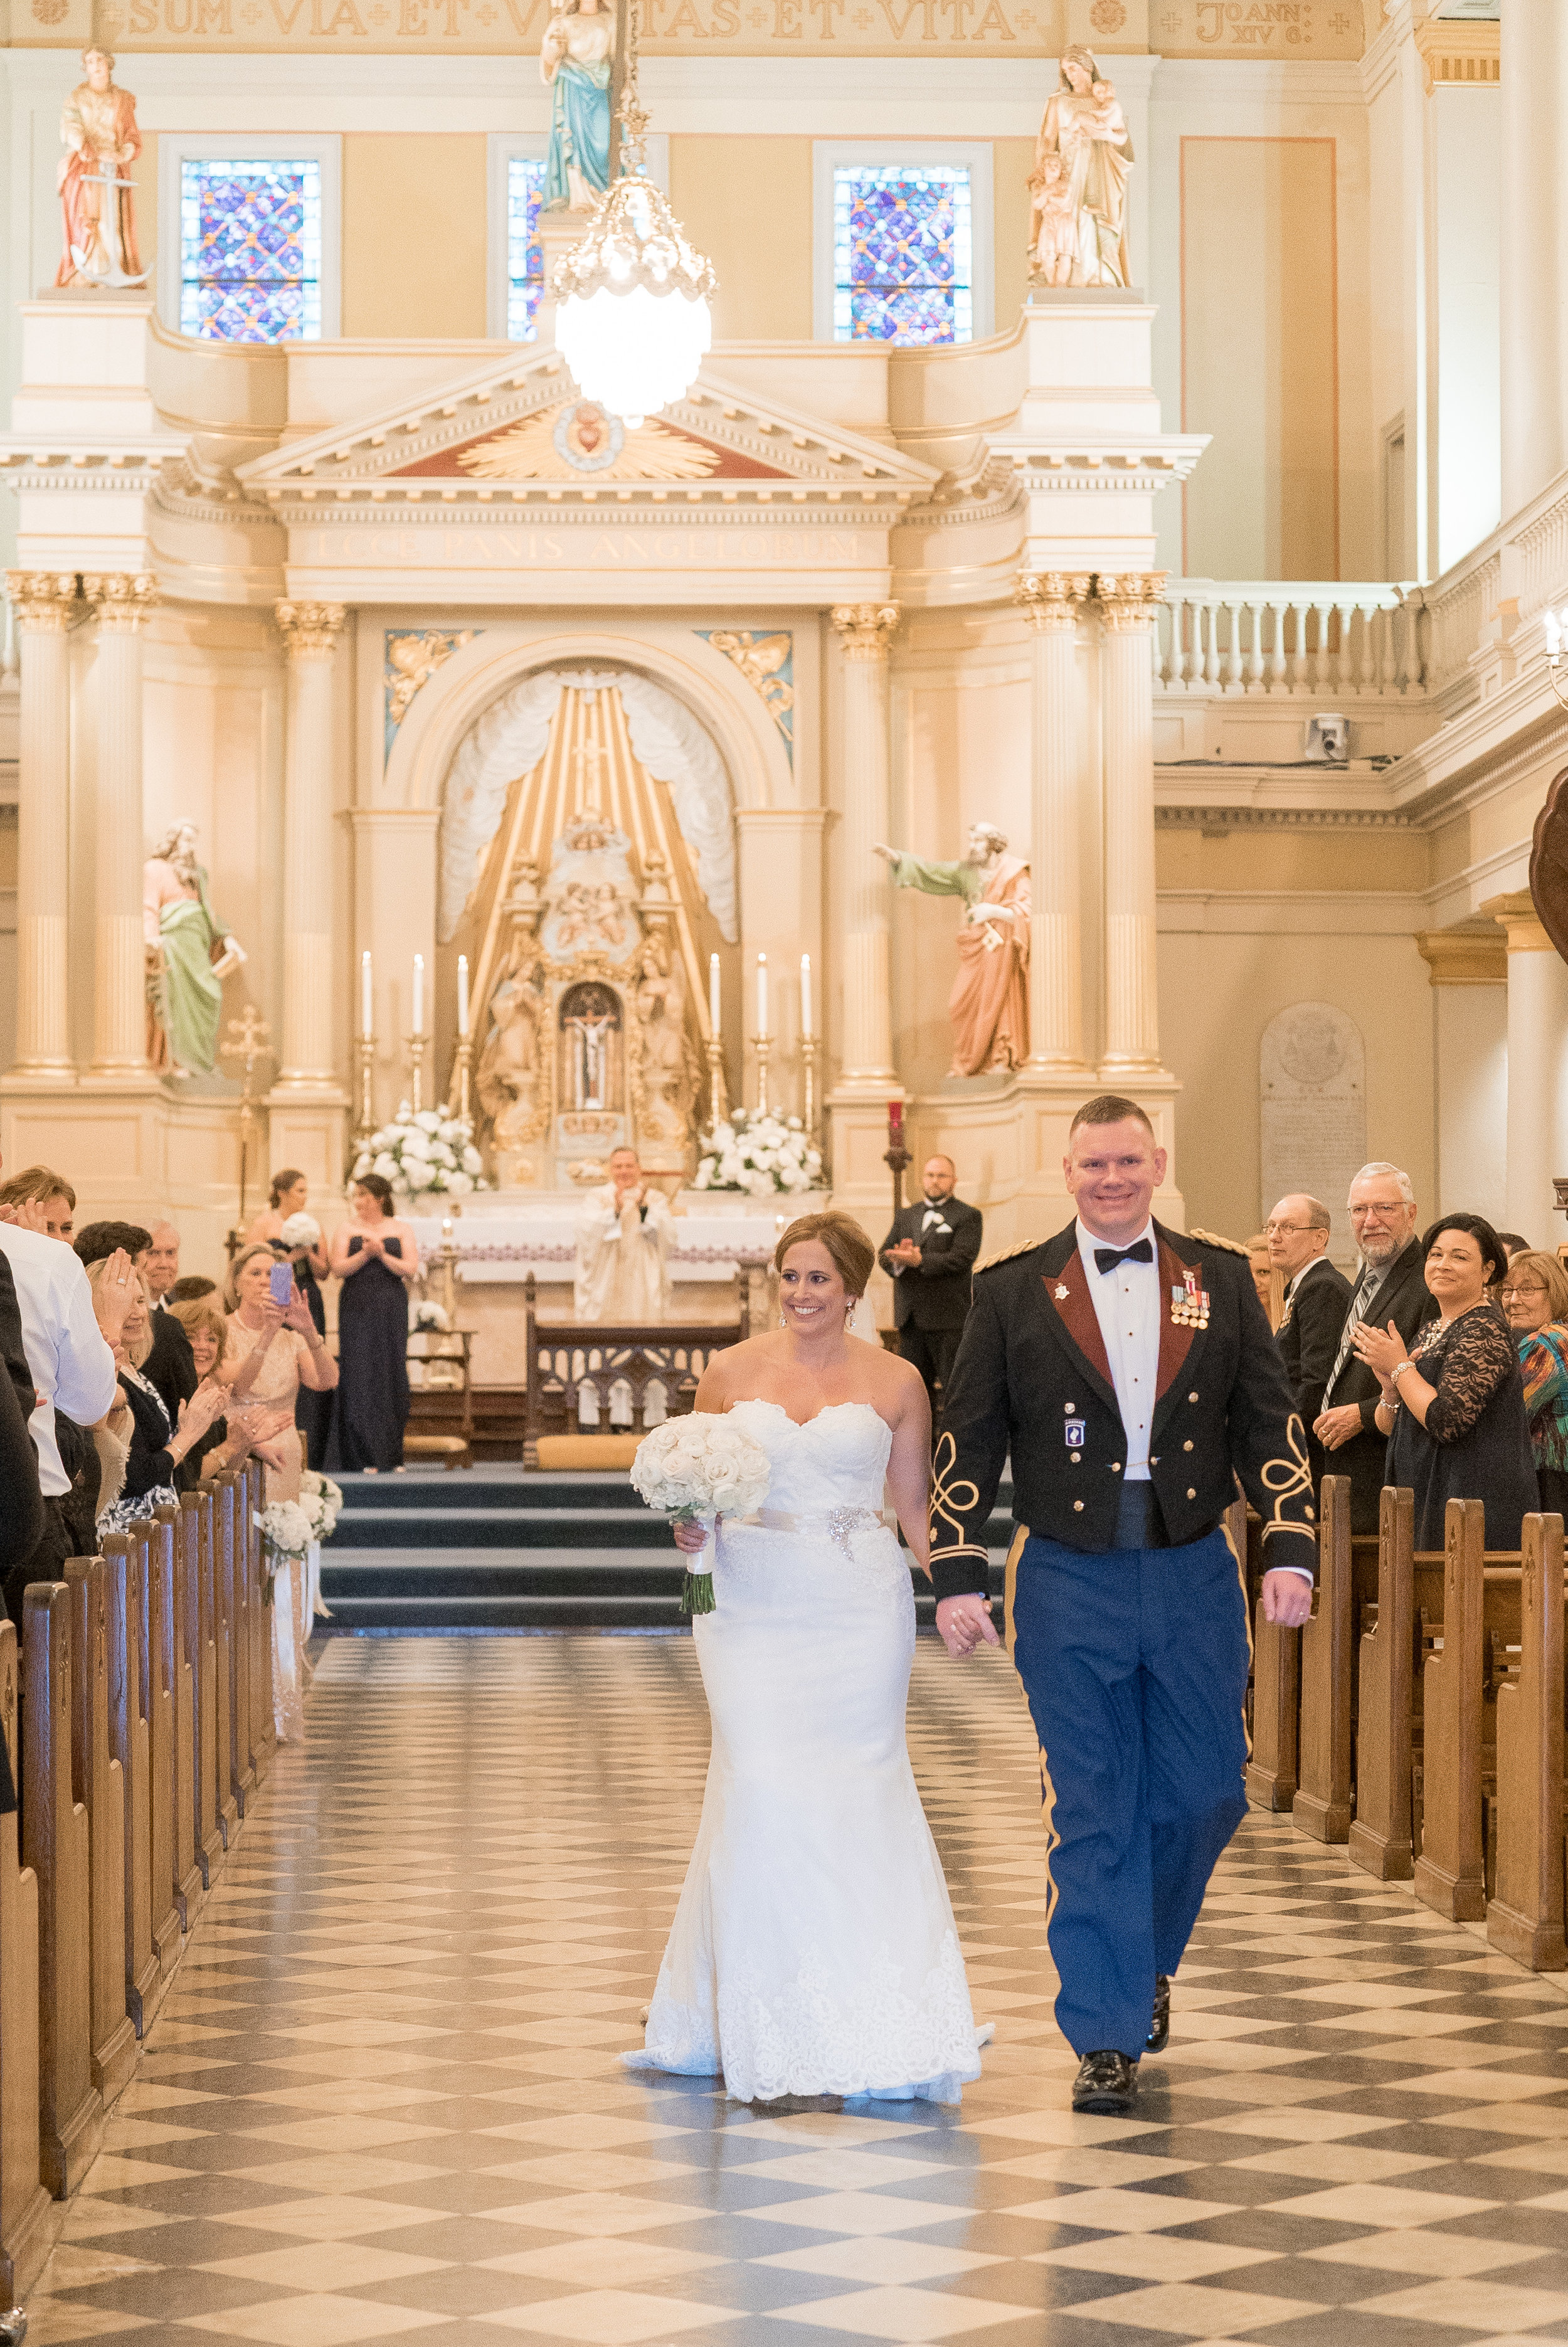 New Orleans Wedding - Navy and Gold Wedding Details - The Overwhelmed Bride